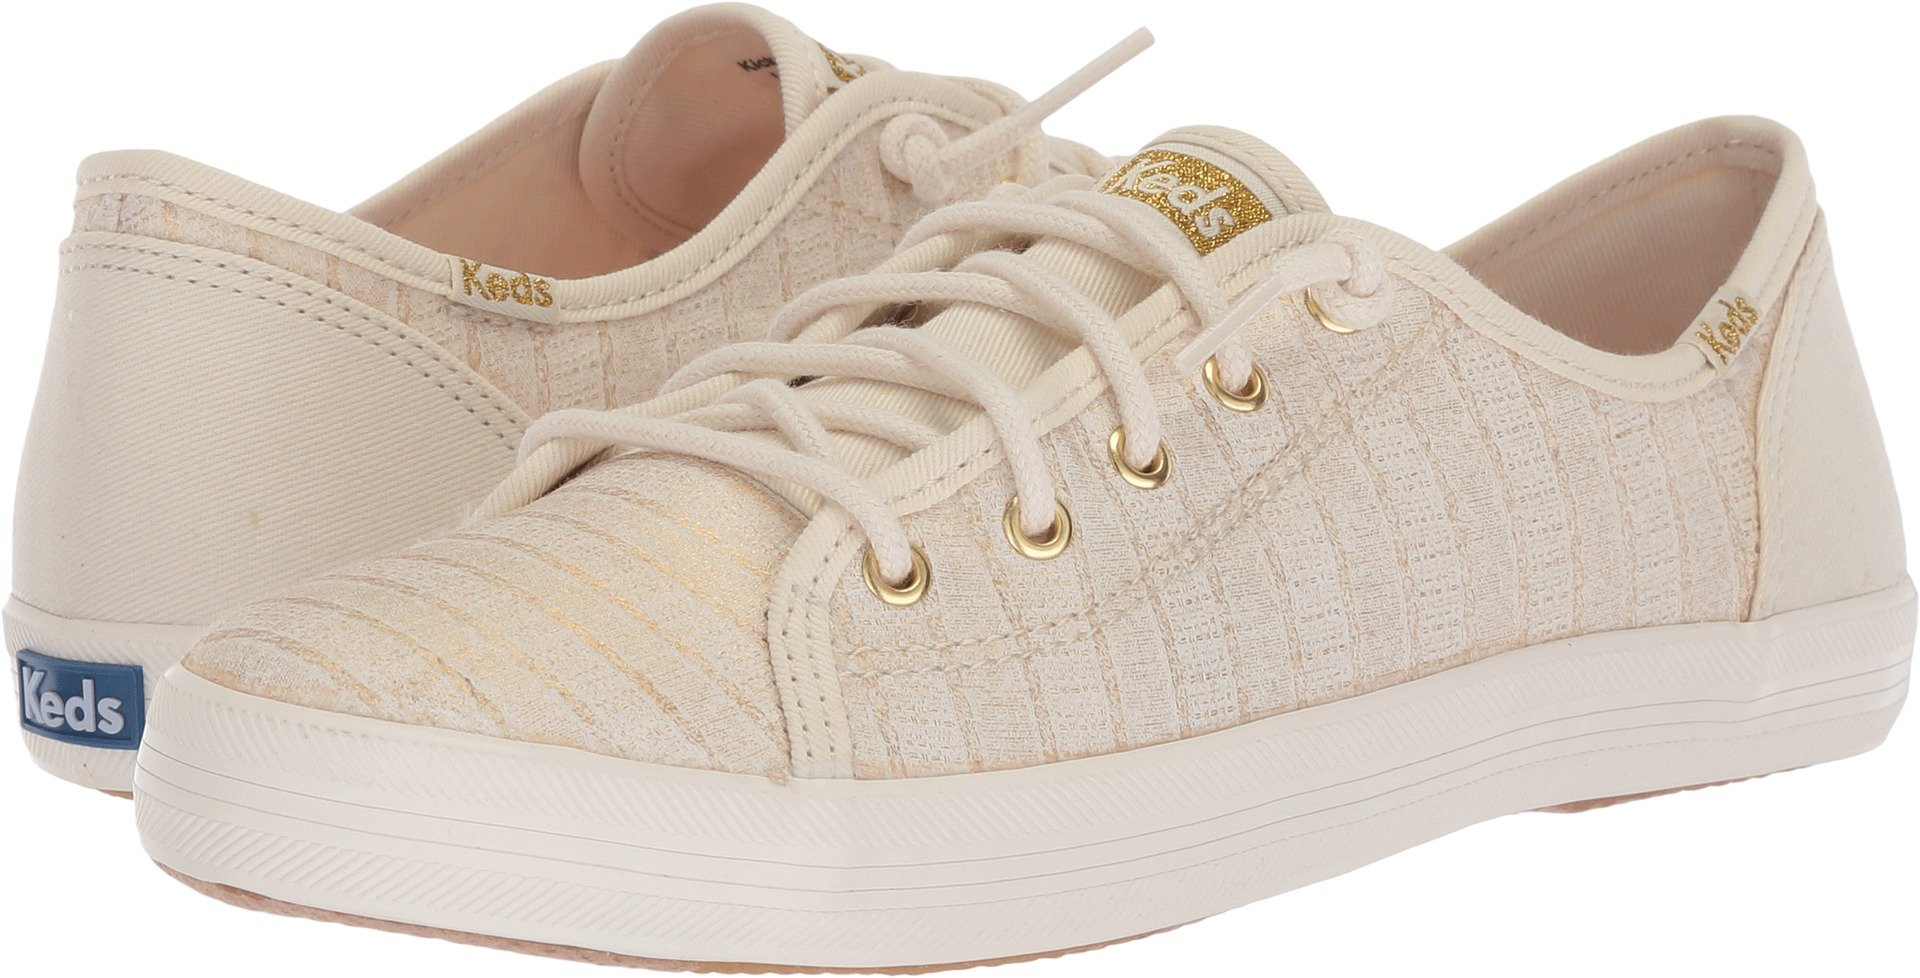 Keds Girls' Kickstart Seasonal